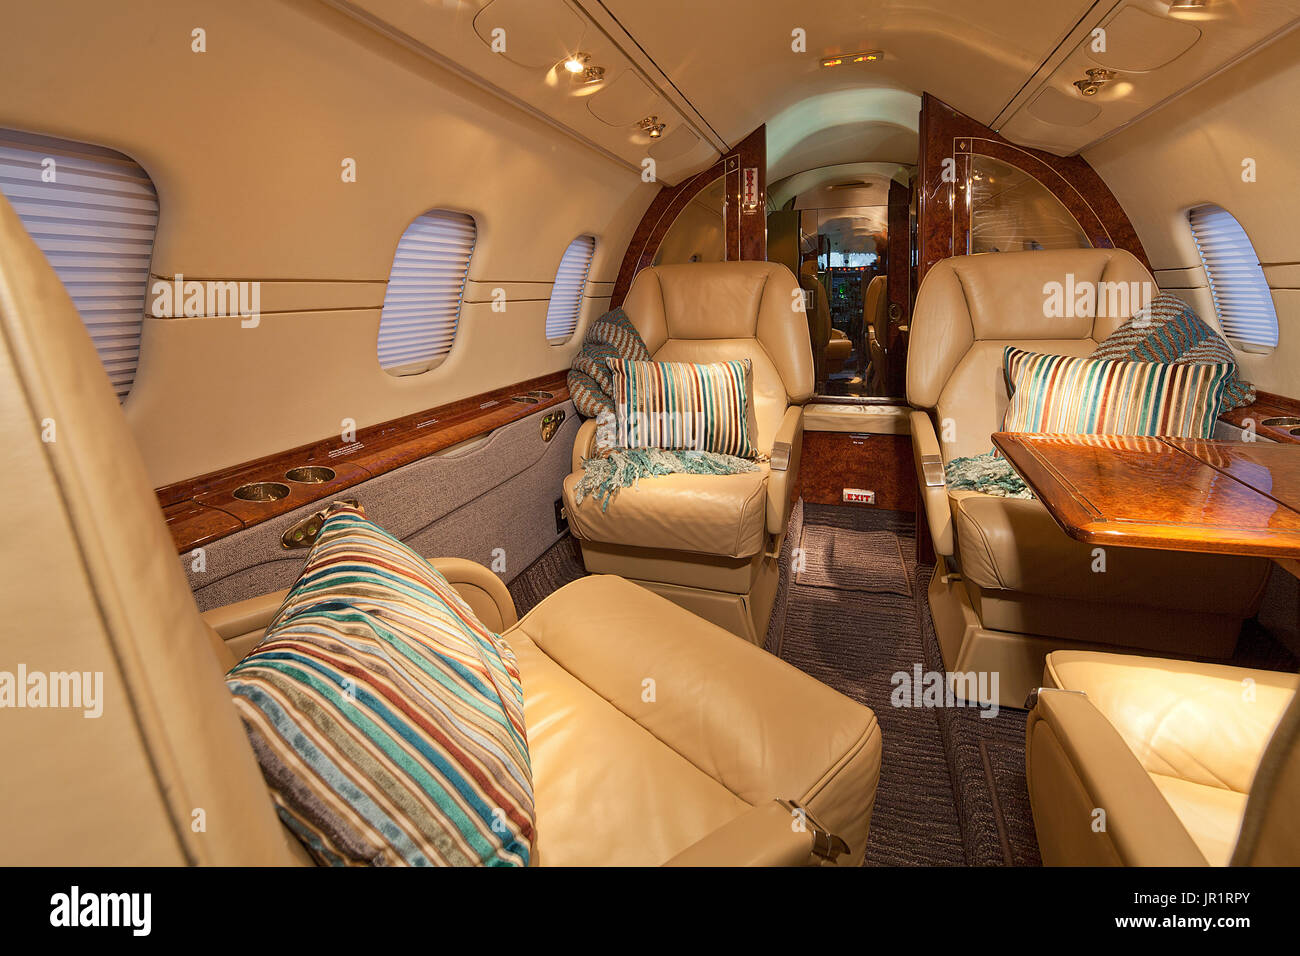 Cabin in private Lear 60 jet aircraft - Stock Image